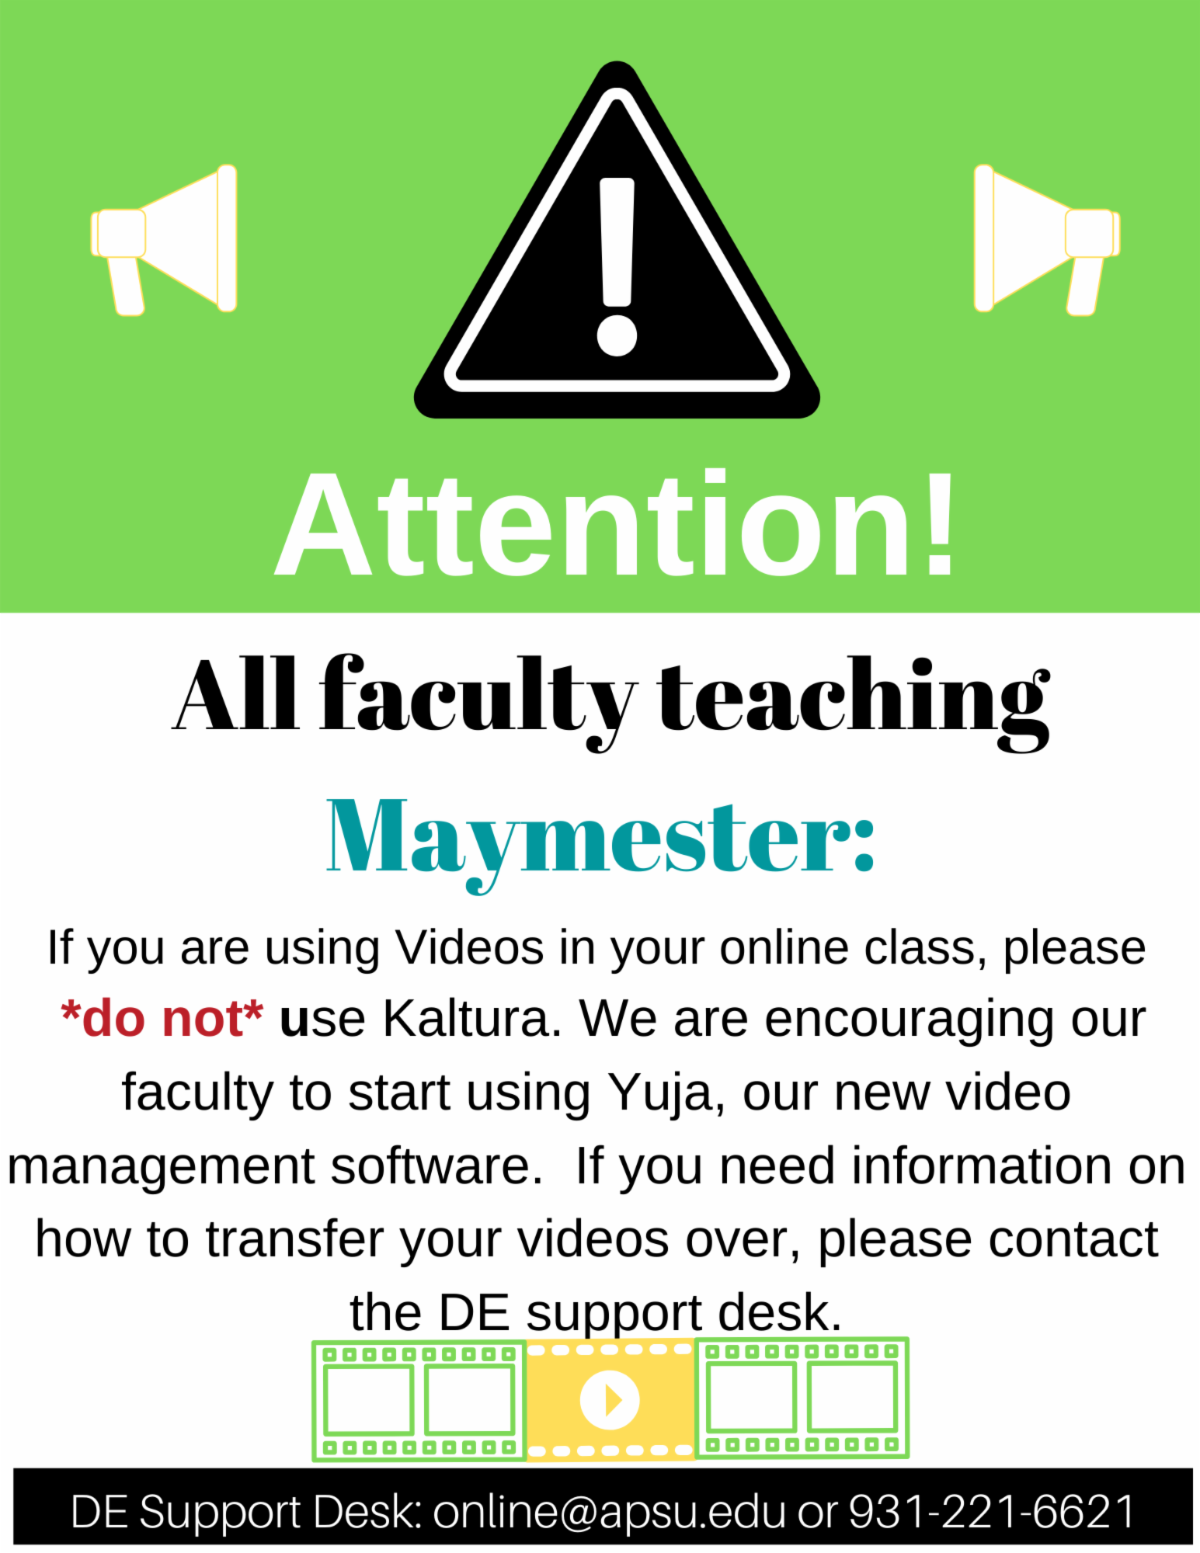 If you are using videos in your courses please do not use kaltura contact distance education by clicking on this graphic for more information